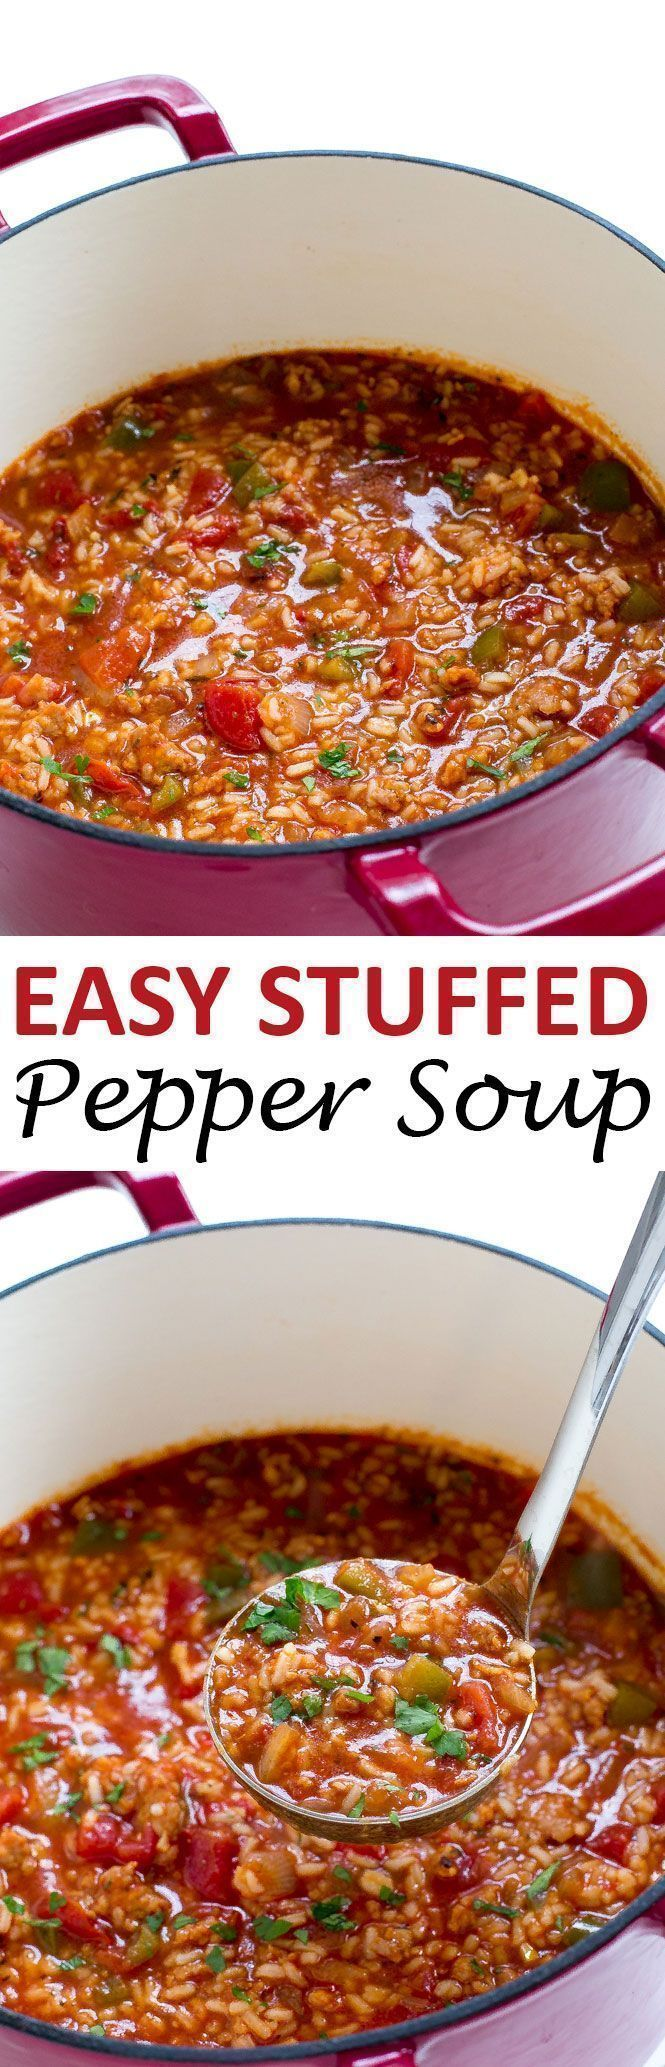 Stuffed Pepper Soup loaded with spicy sausage, bell peppers and rice! Everything you love about a stuffed pepper but in soup form! | chefsavvy.com